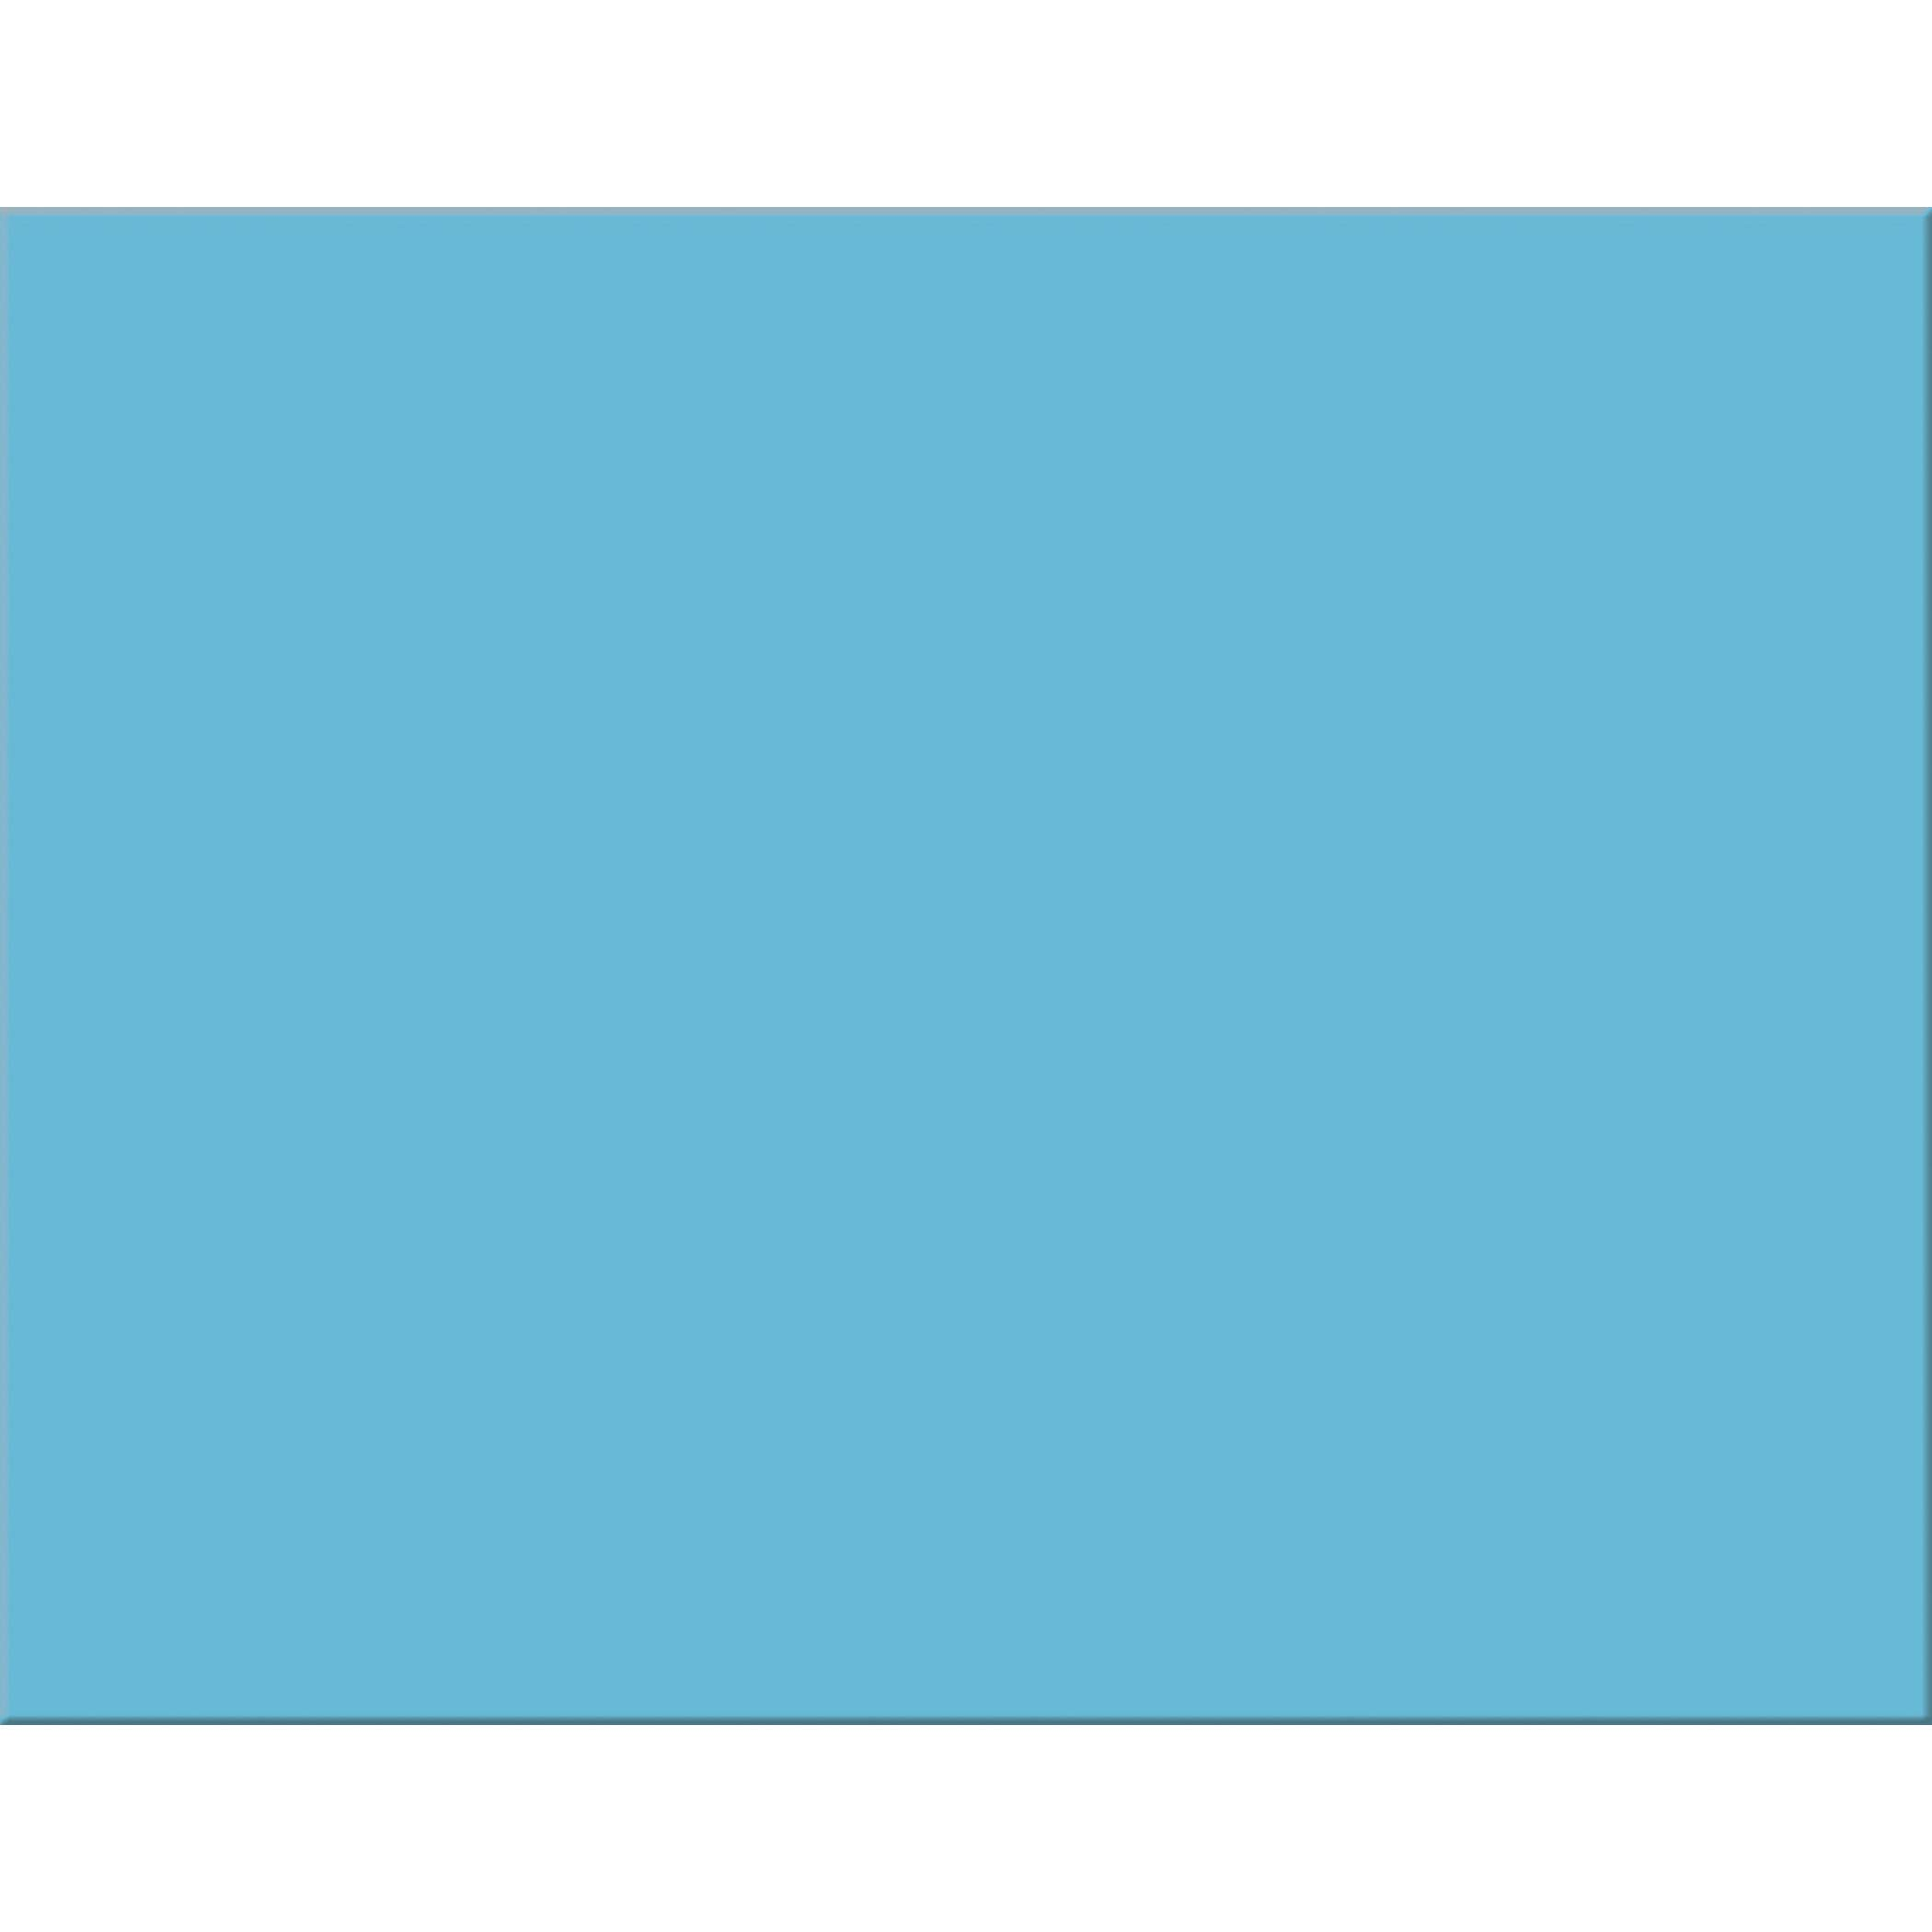 Pacon PAC54841 4-Ply Railroad Board, Light Blue, 22'' x 28'', 25 Sheets by Peacock